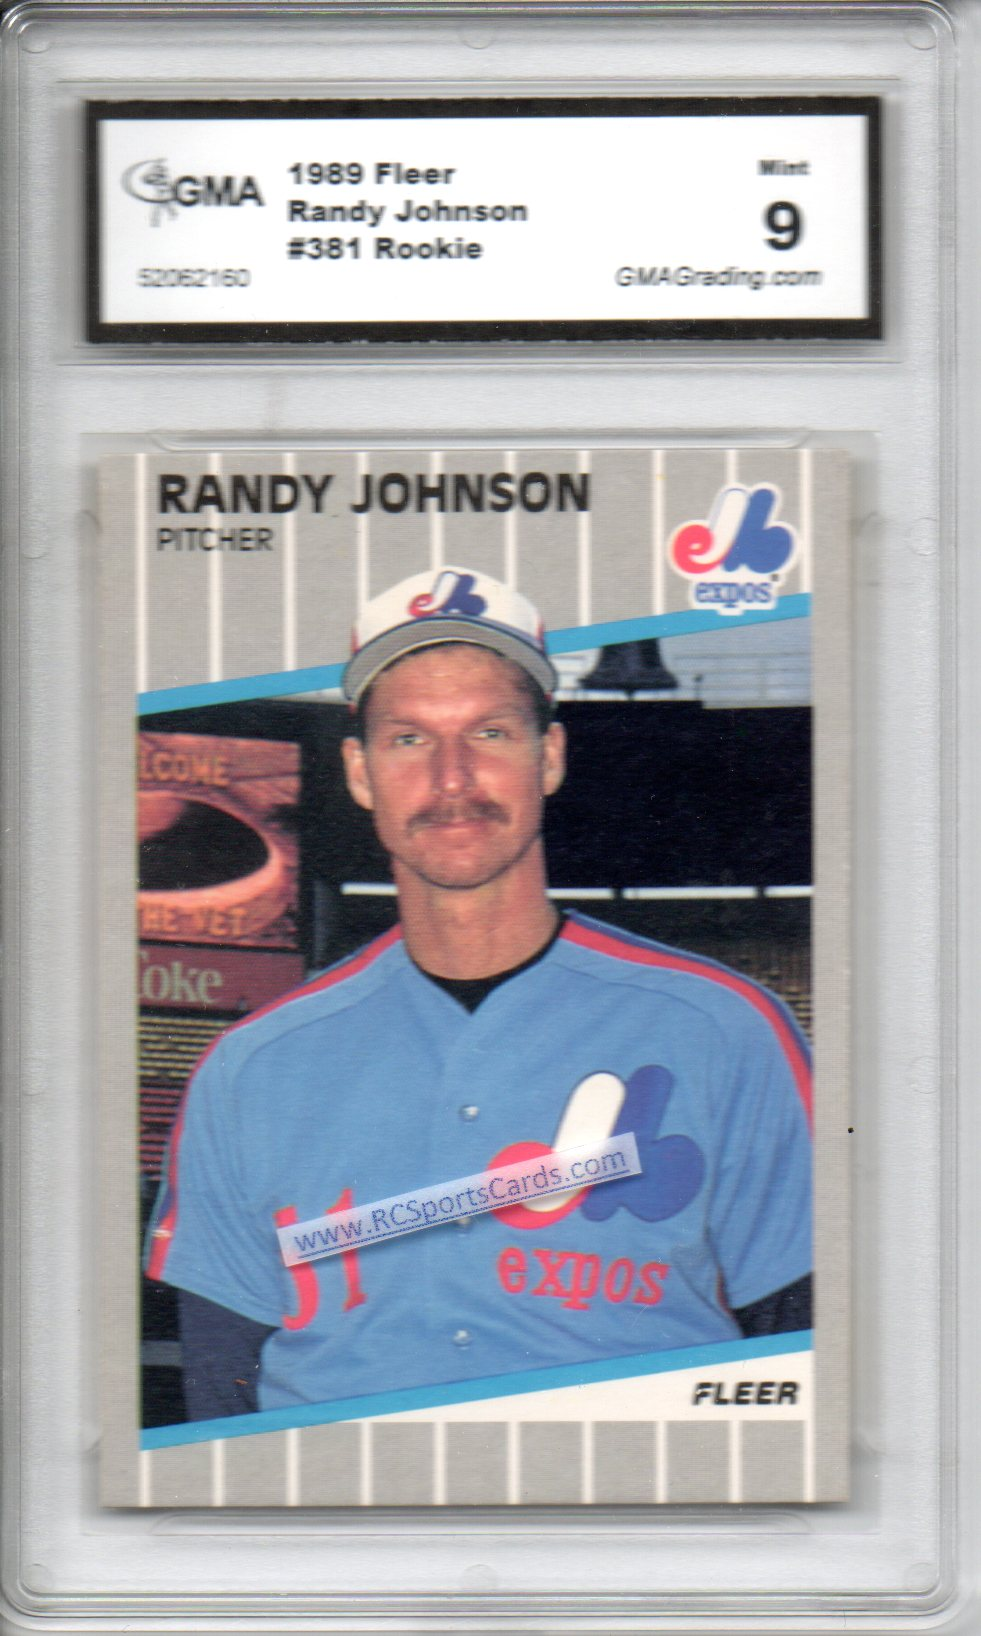 1985 1989 Baseball Graded Cards For Sale Baseball Cards